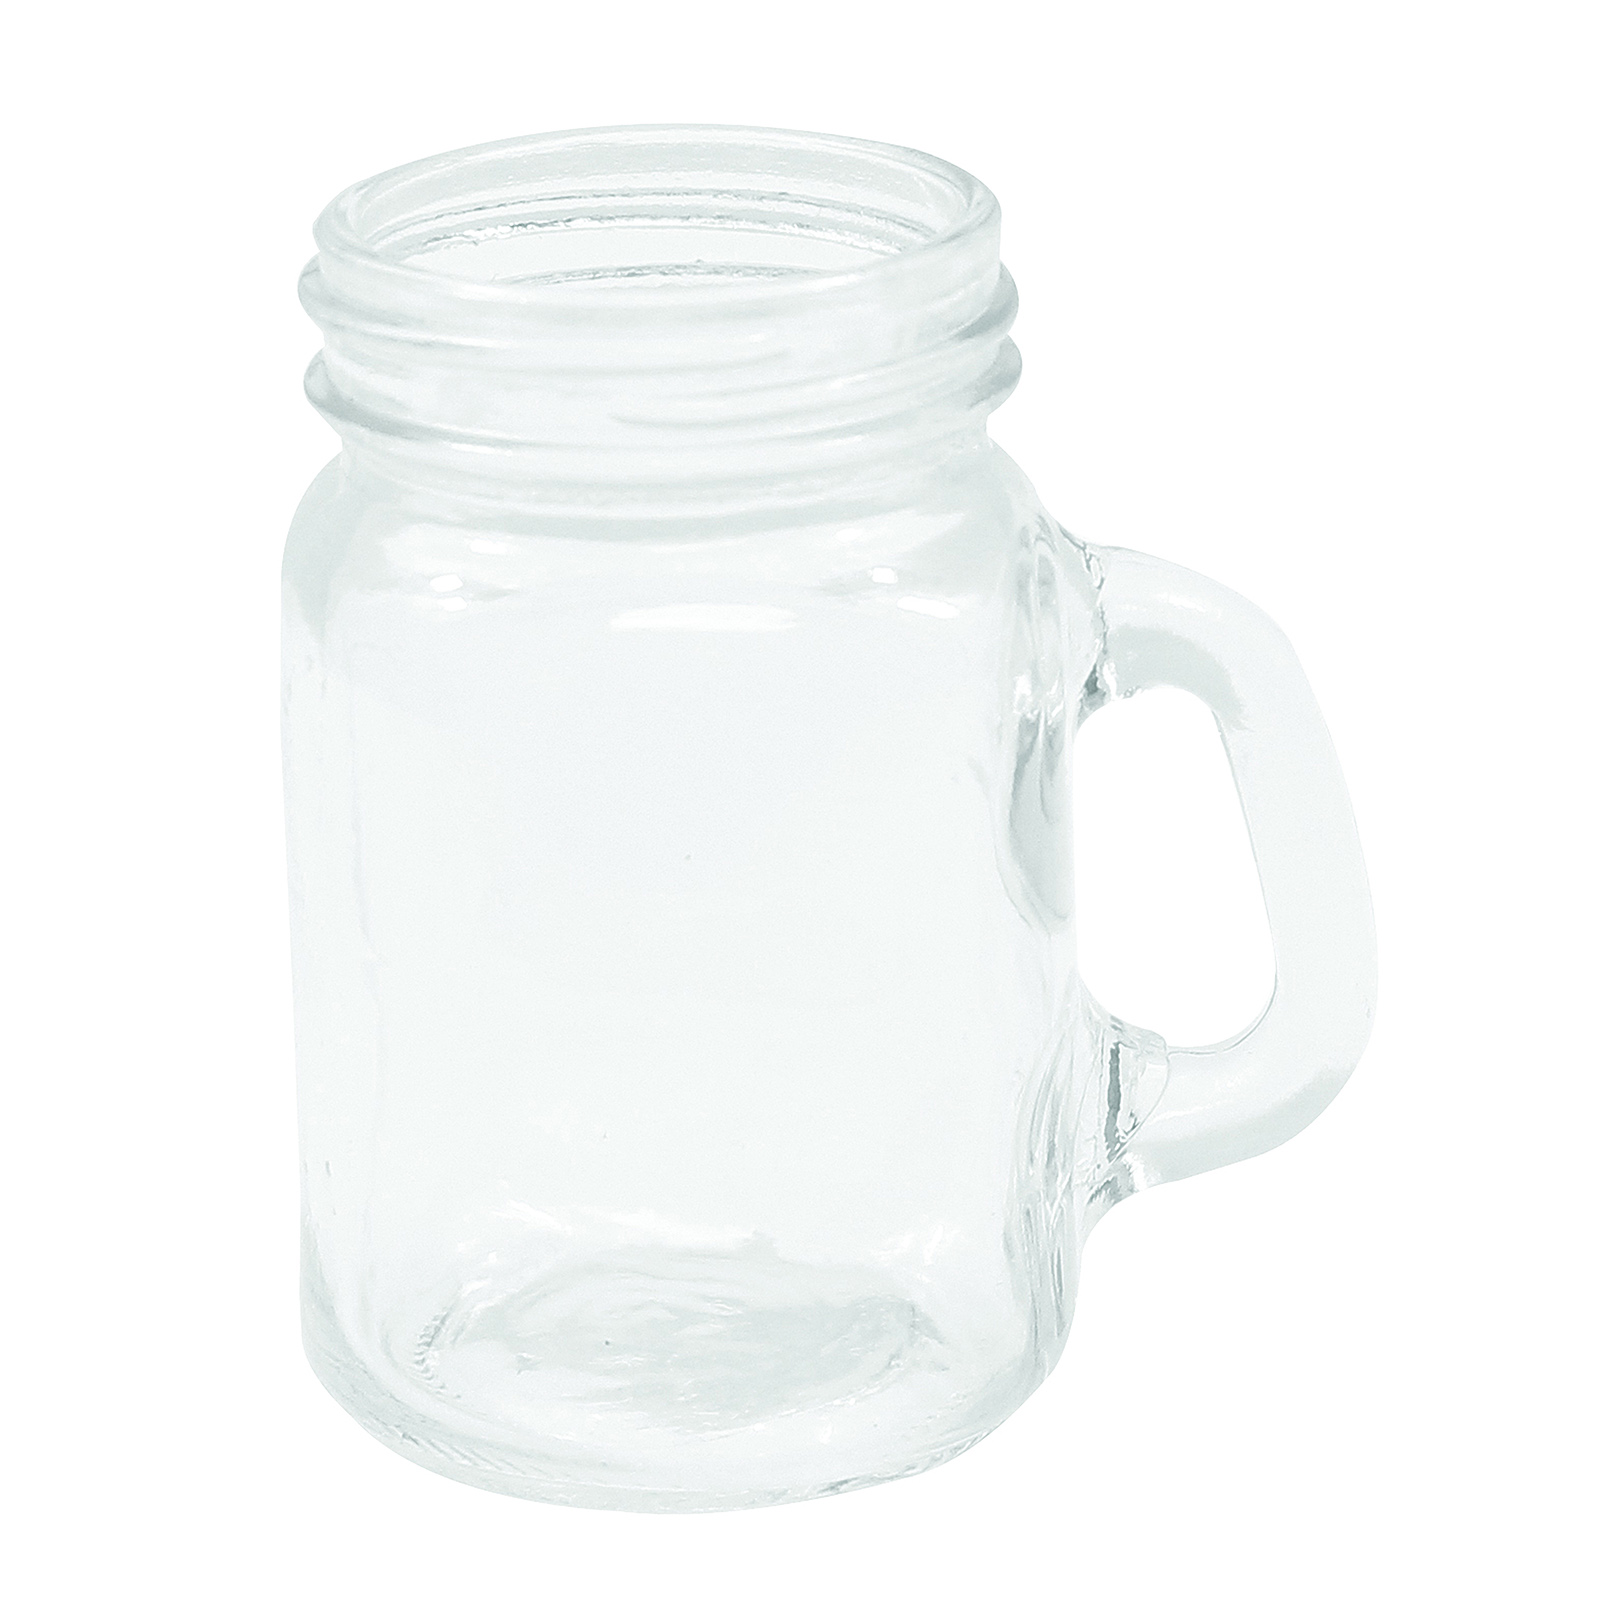 TableCraft Products FLBEER4 glass, mason jar